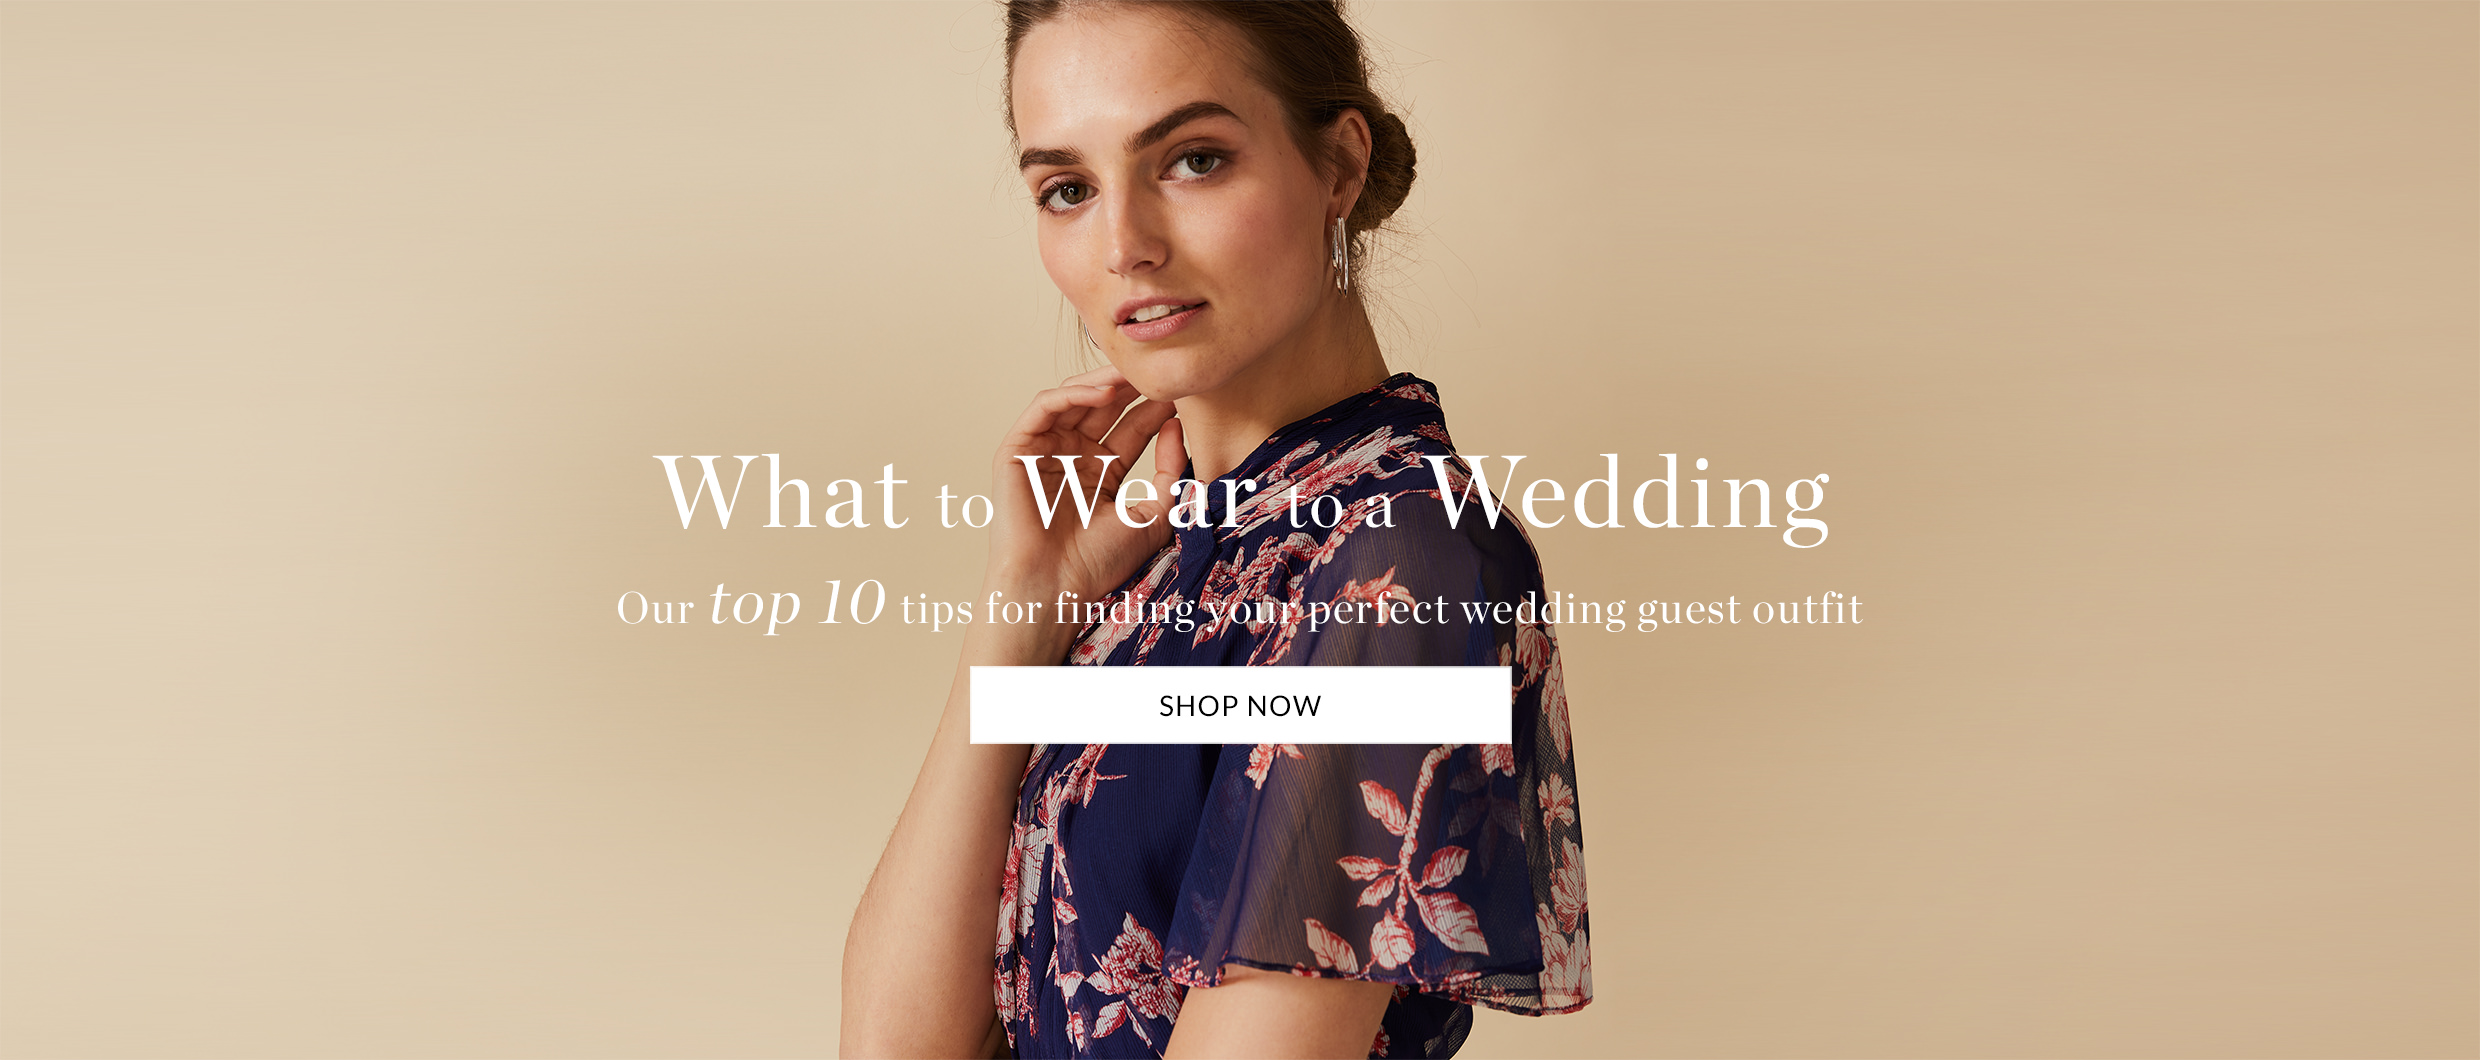 What to Wear to a Wedding | Our top 10 tips for finding your perfect wedding guest outfit | Shop Now